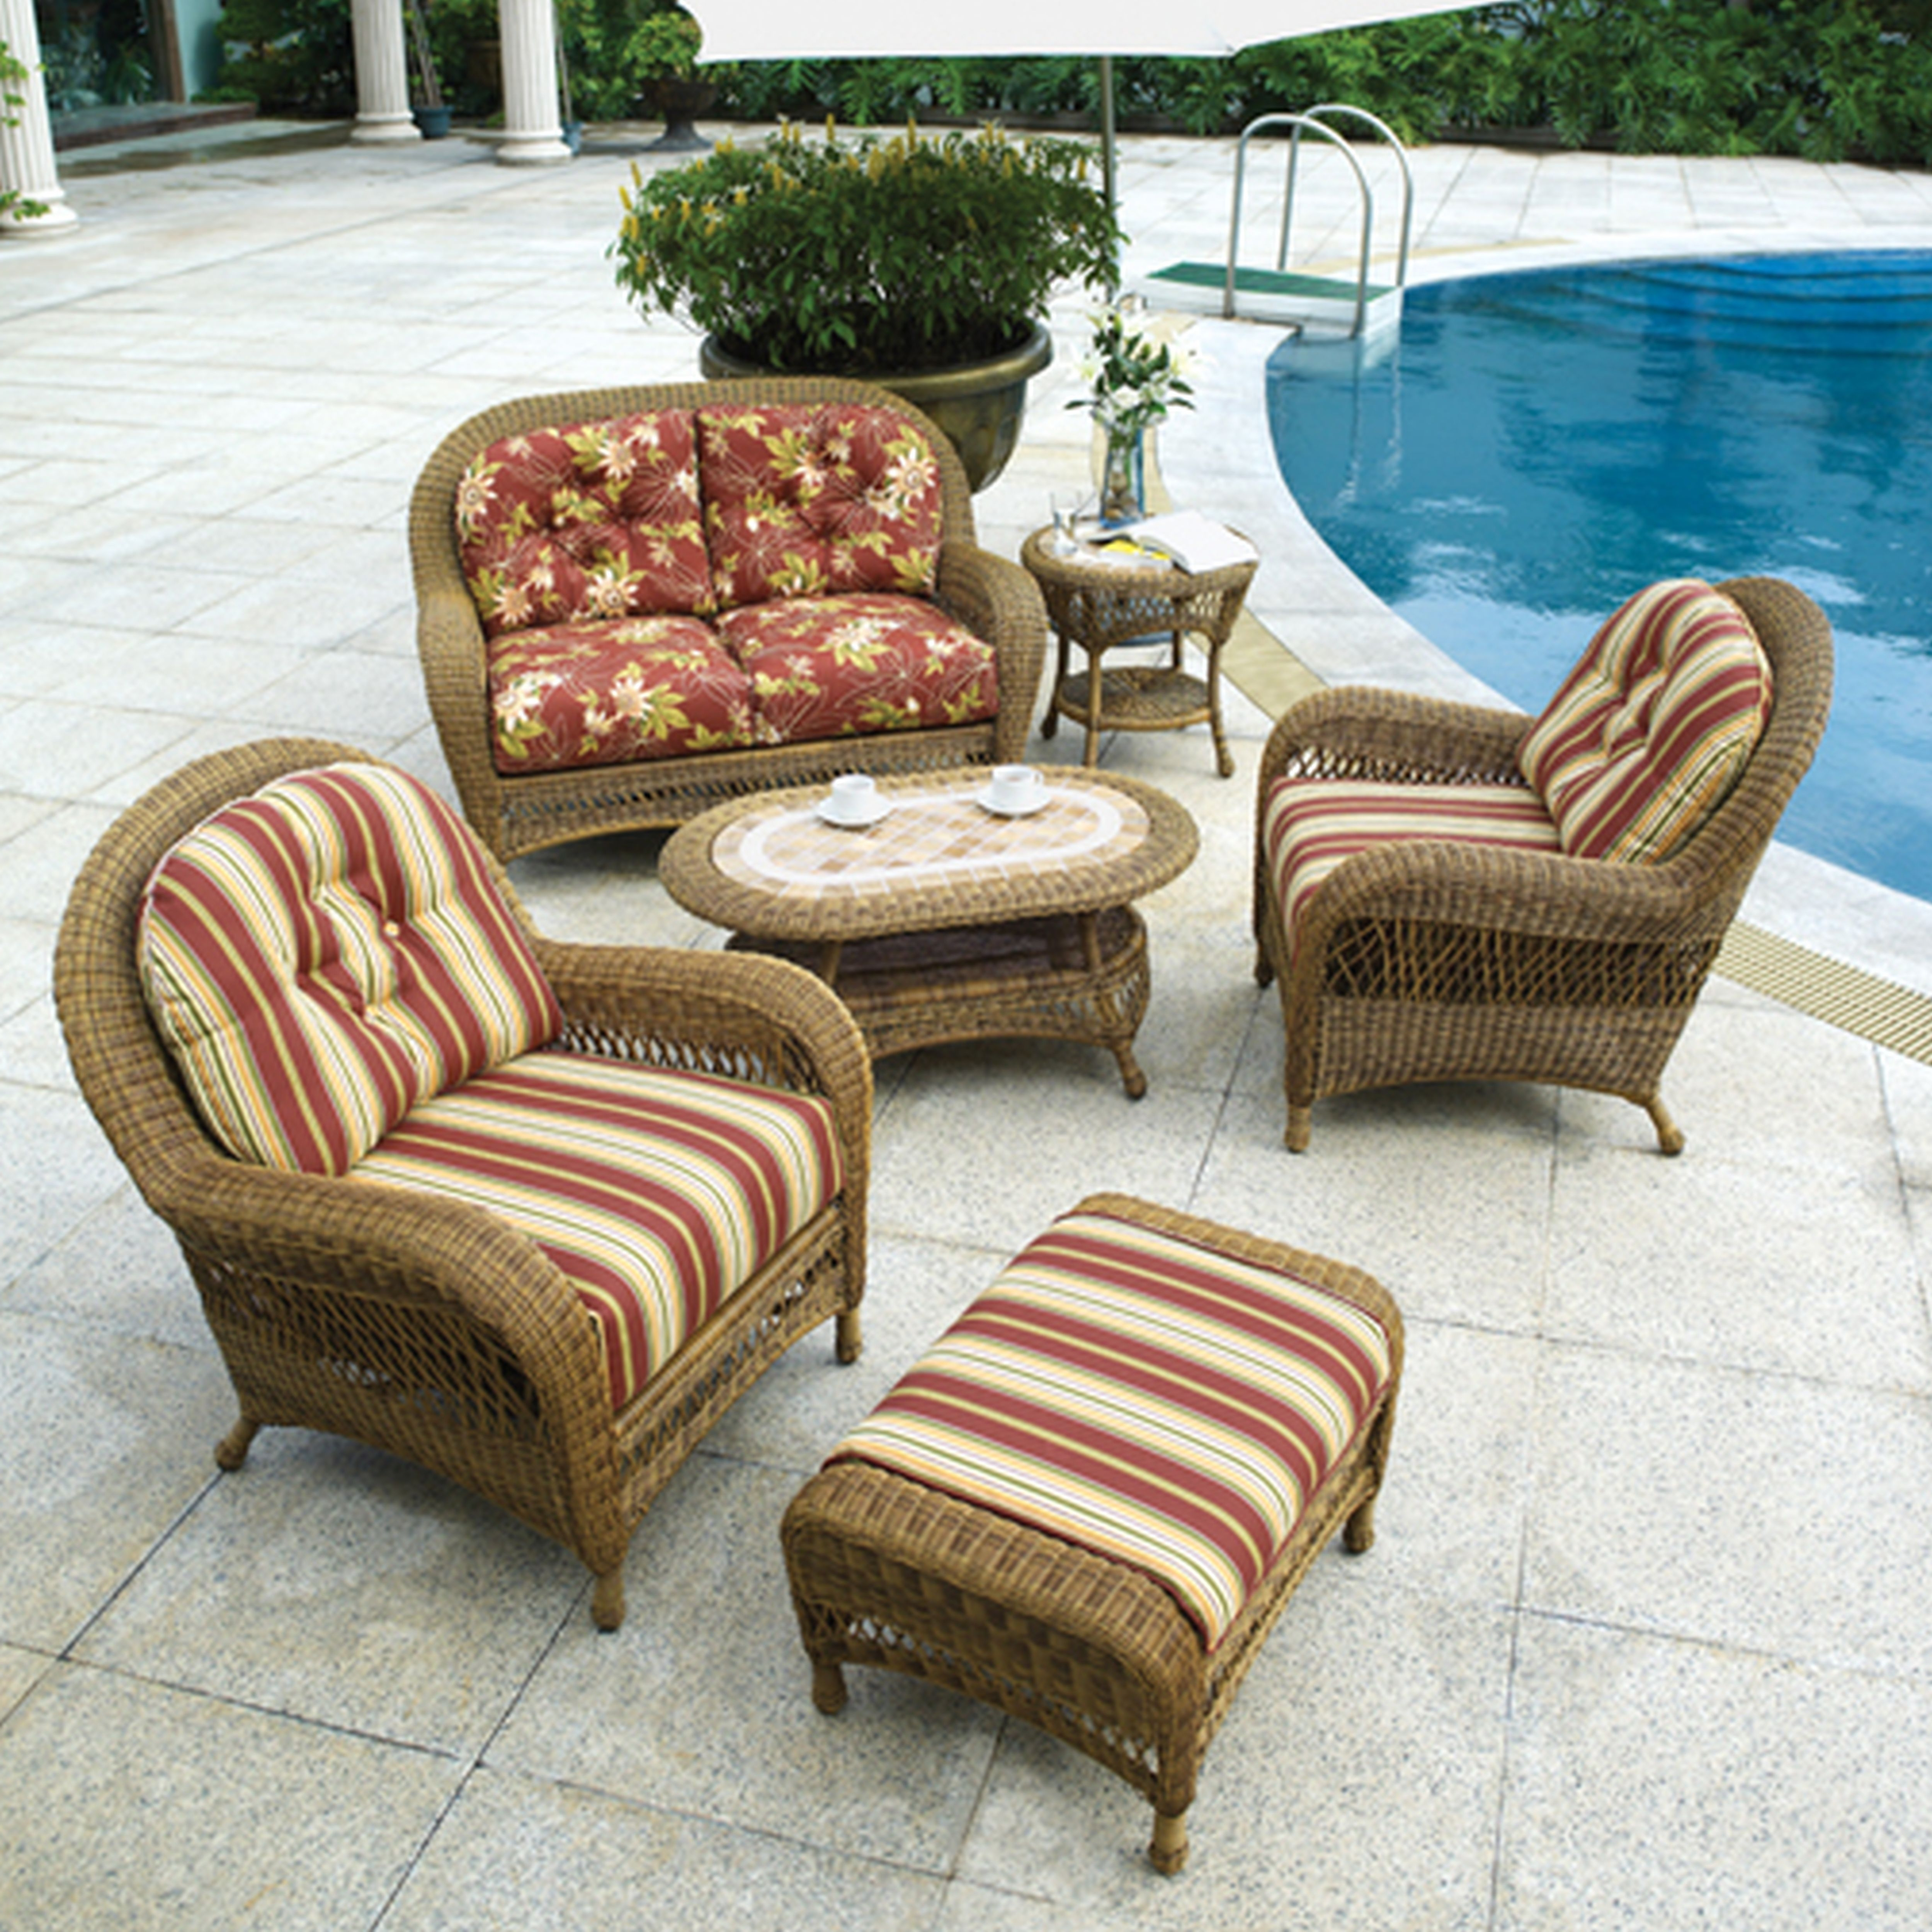 Chair : Magnificent Wicker Chair With Ottoman Additional Styles Of In Current Patio Conversation Sets With Ottoman (View 8 of 15)